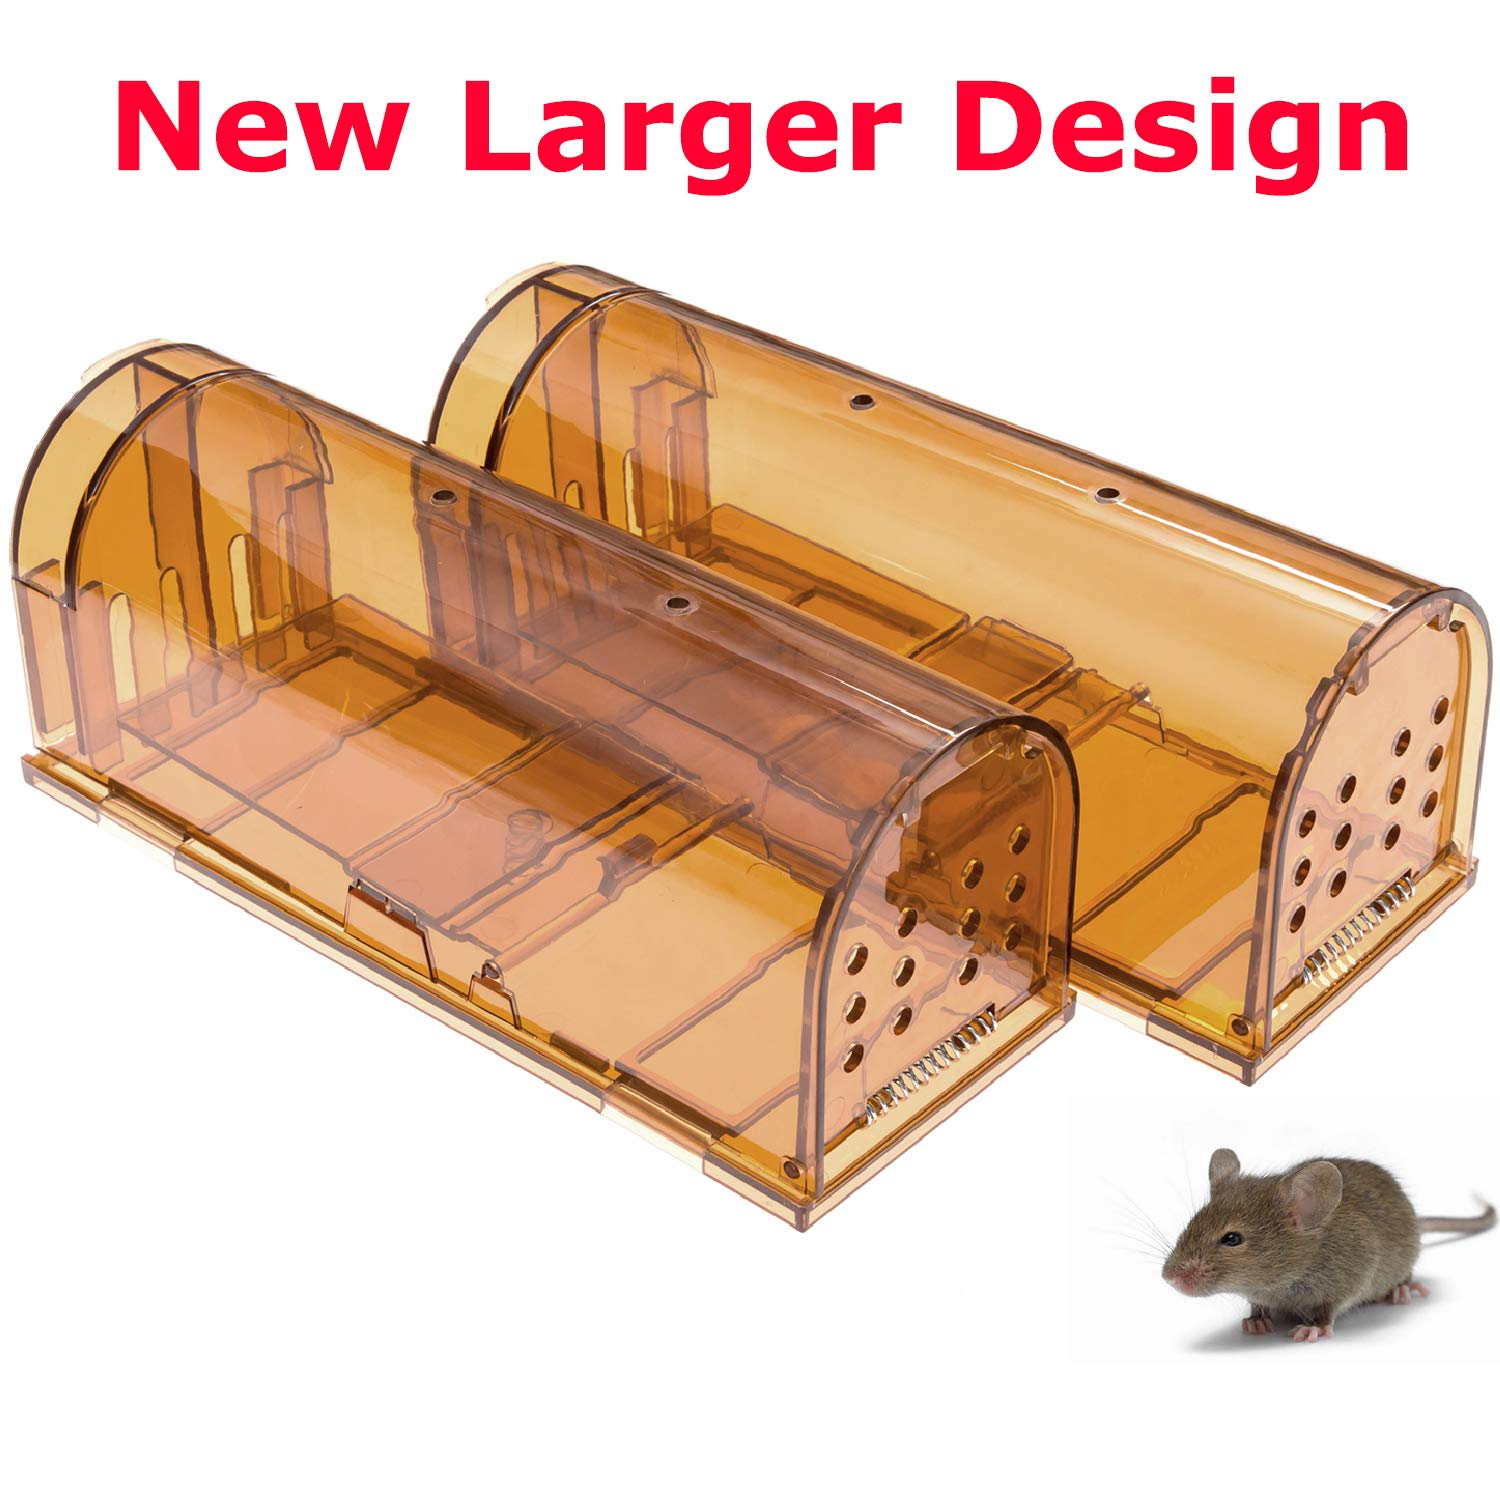 CaptSure Original Humane Mouse Traps, Easy to Set, Kids/Pets Safe, Reusable for Indoor/Outdoor use, for Small Rodent/Voles/Hamsters/Moles Catcher That Works. 2 Pack (Large) by CaptSure